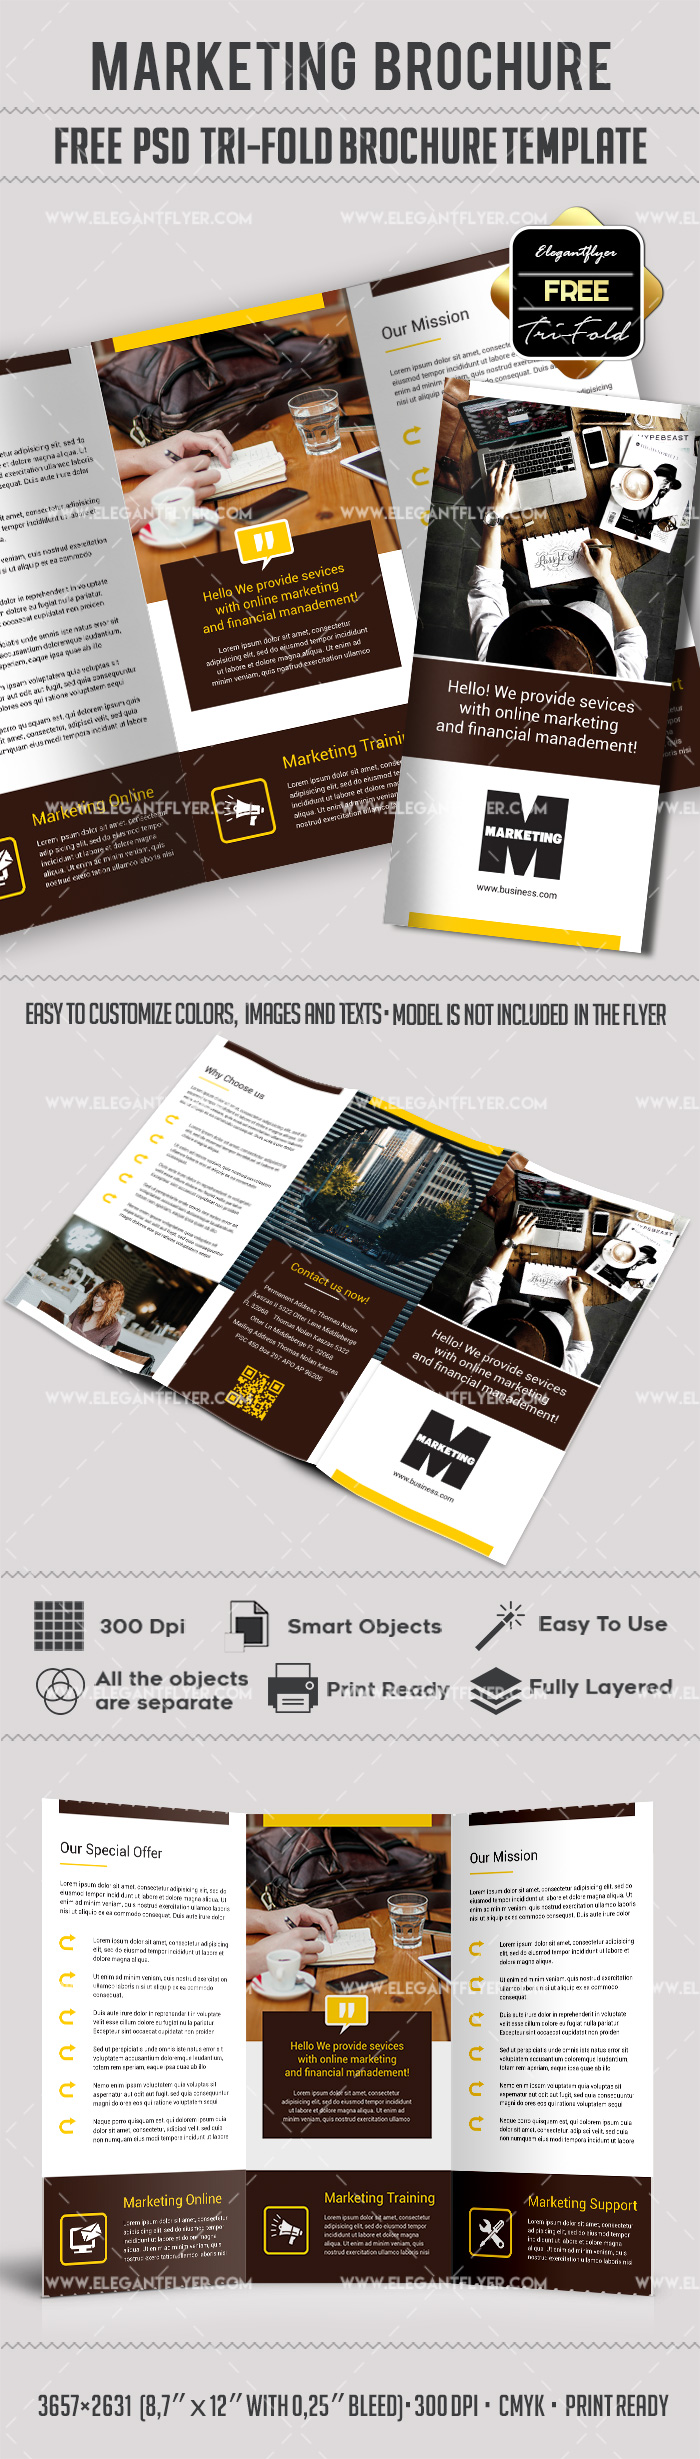 Marketing free tri fold psd brochure template by for Template for brochure free